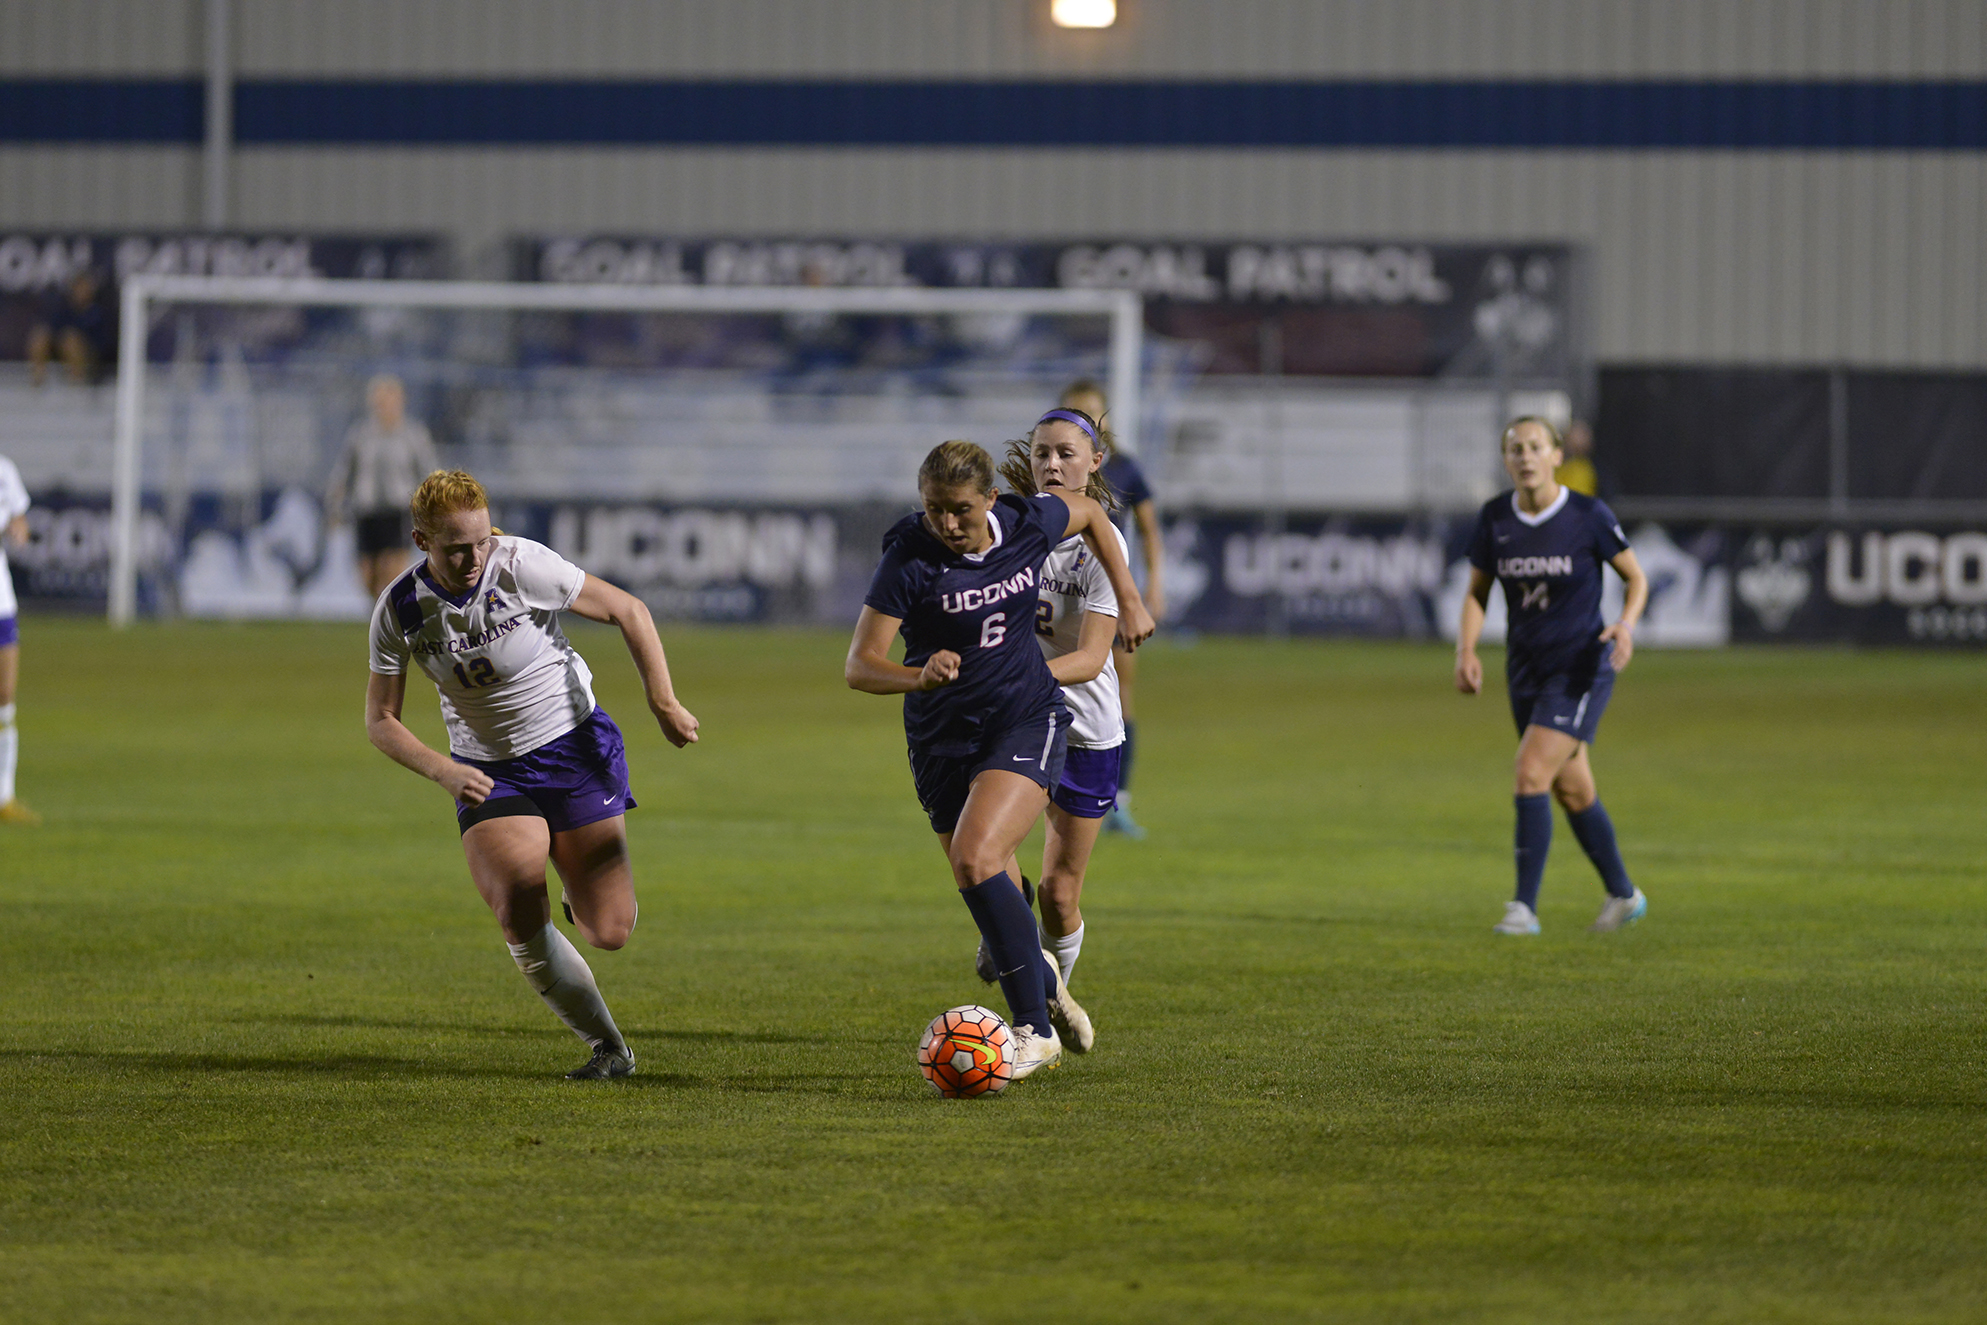 UConn redshirt senior forward Andrea Plucenik dribbles the ball during the Huskies' game against East Carolina at Joseph J. Morrone Stadium on Thursday, Oct. 8, 2015. UConn defeated the Pirates 3-1 in Dallas, Texas on Tuesday, Nov. 3, 2015 to advance to the American Athletic Conference semifinals.(Jason Jiang/The Daily Campus)